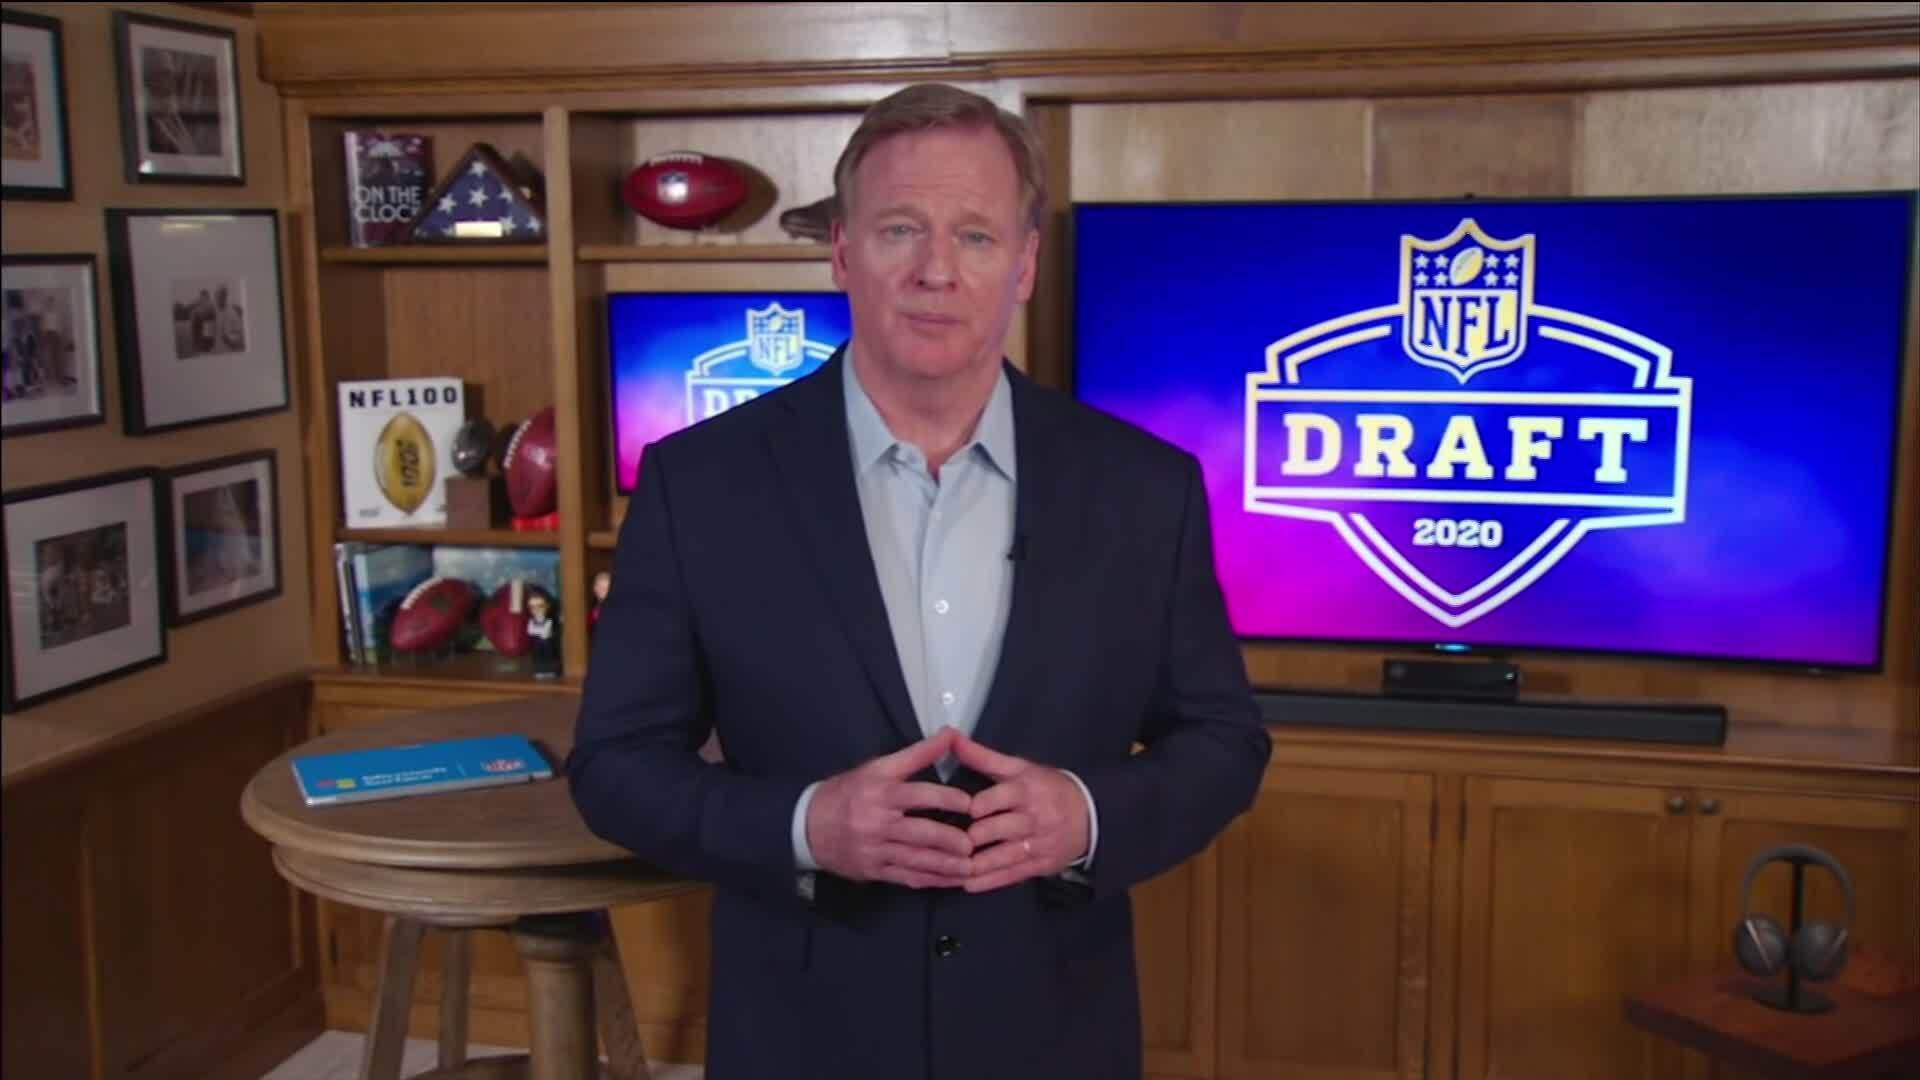 NFL Draft breaks viewing records as it is held remotely